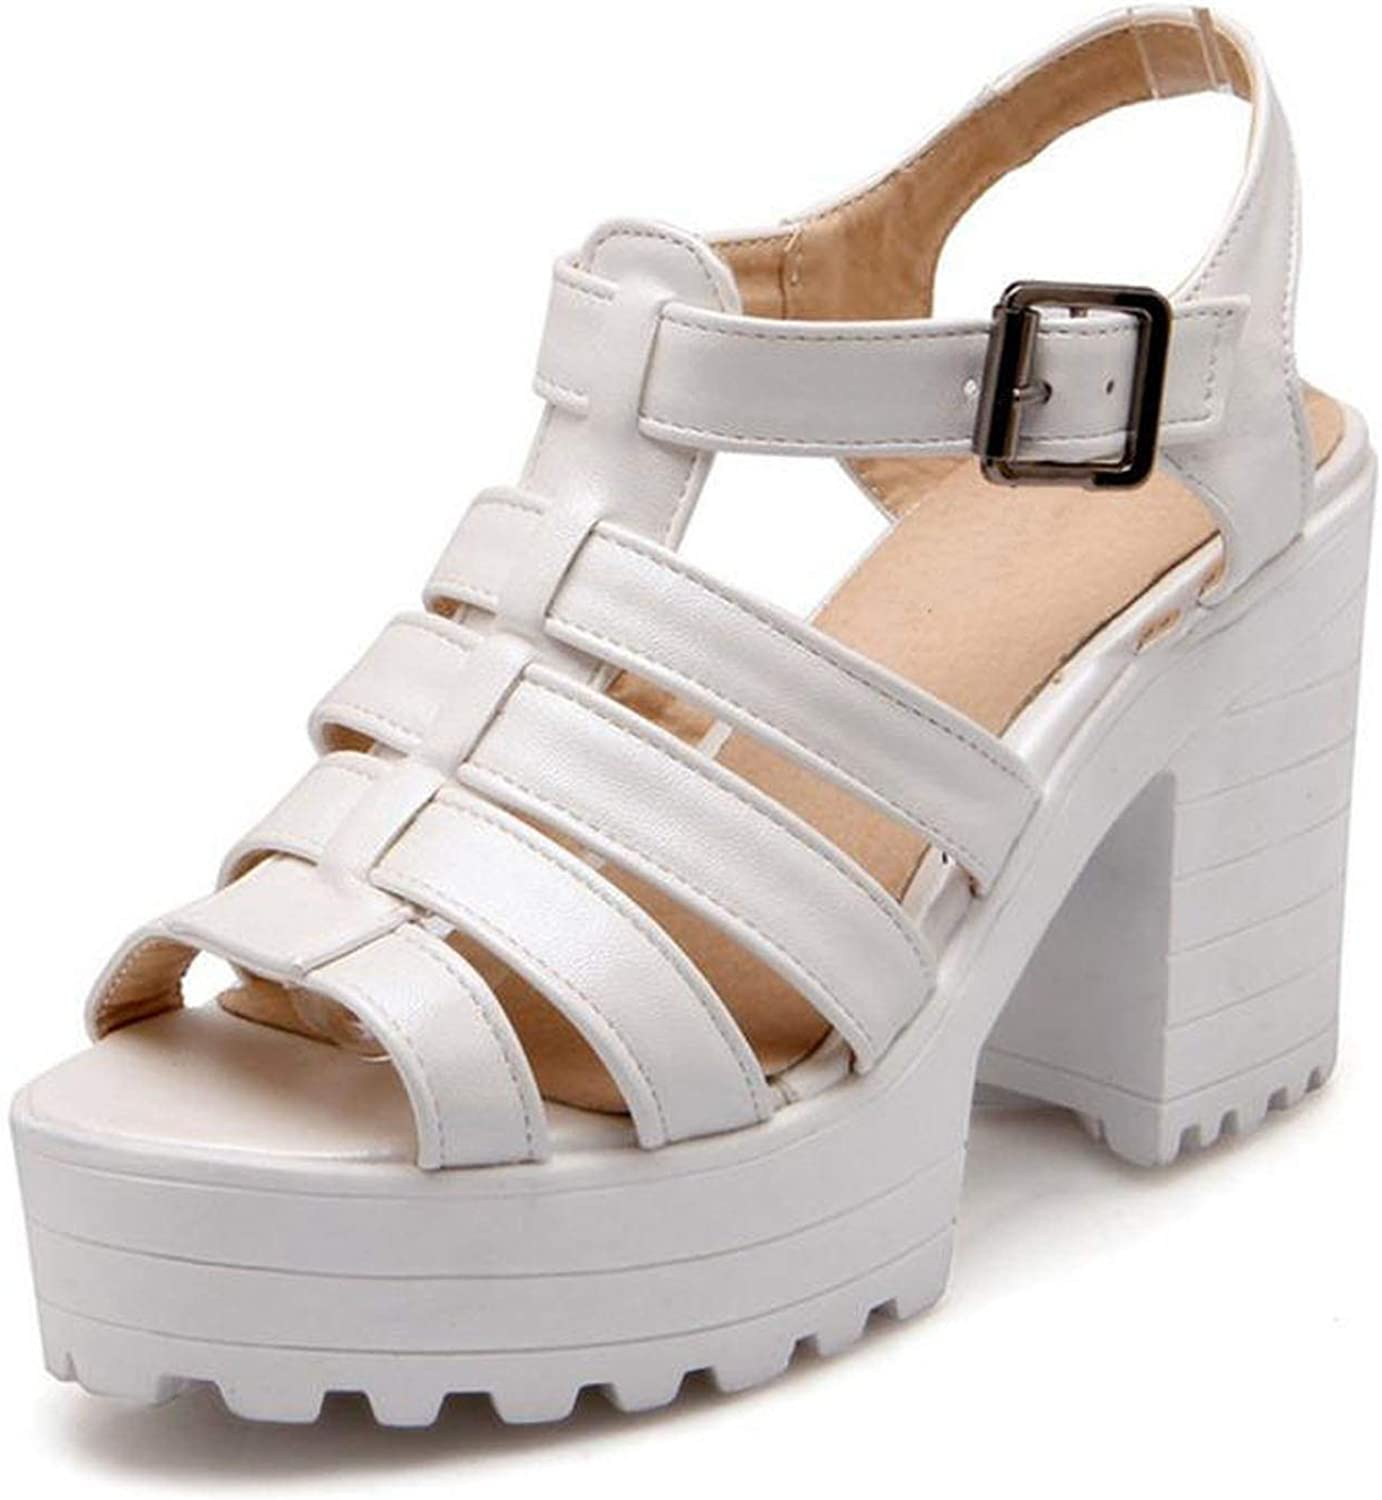 Fairly Peep Toe Ankle Strap Block Chunky High Heel Buckle shoes Platforms,White,5